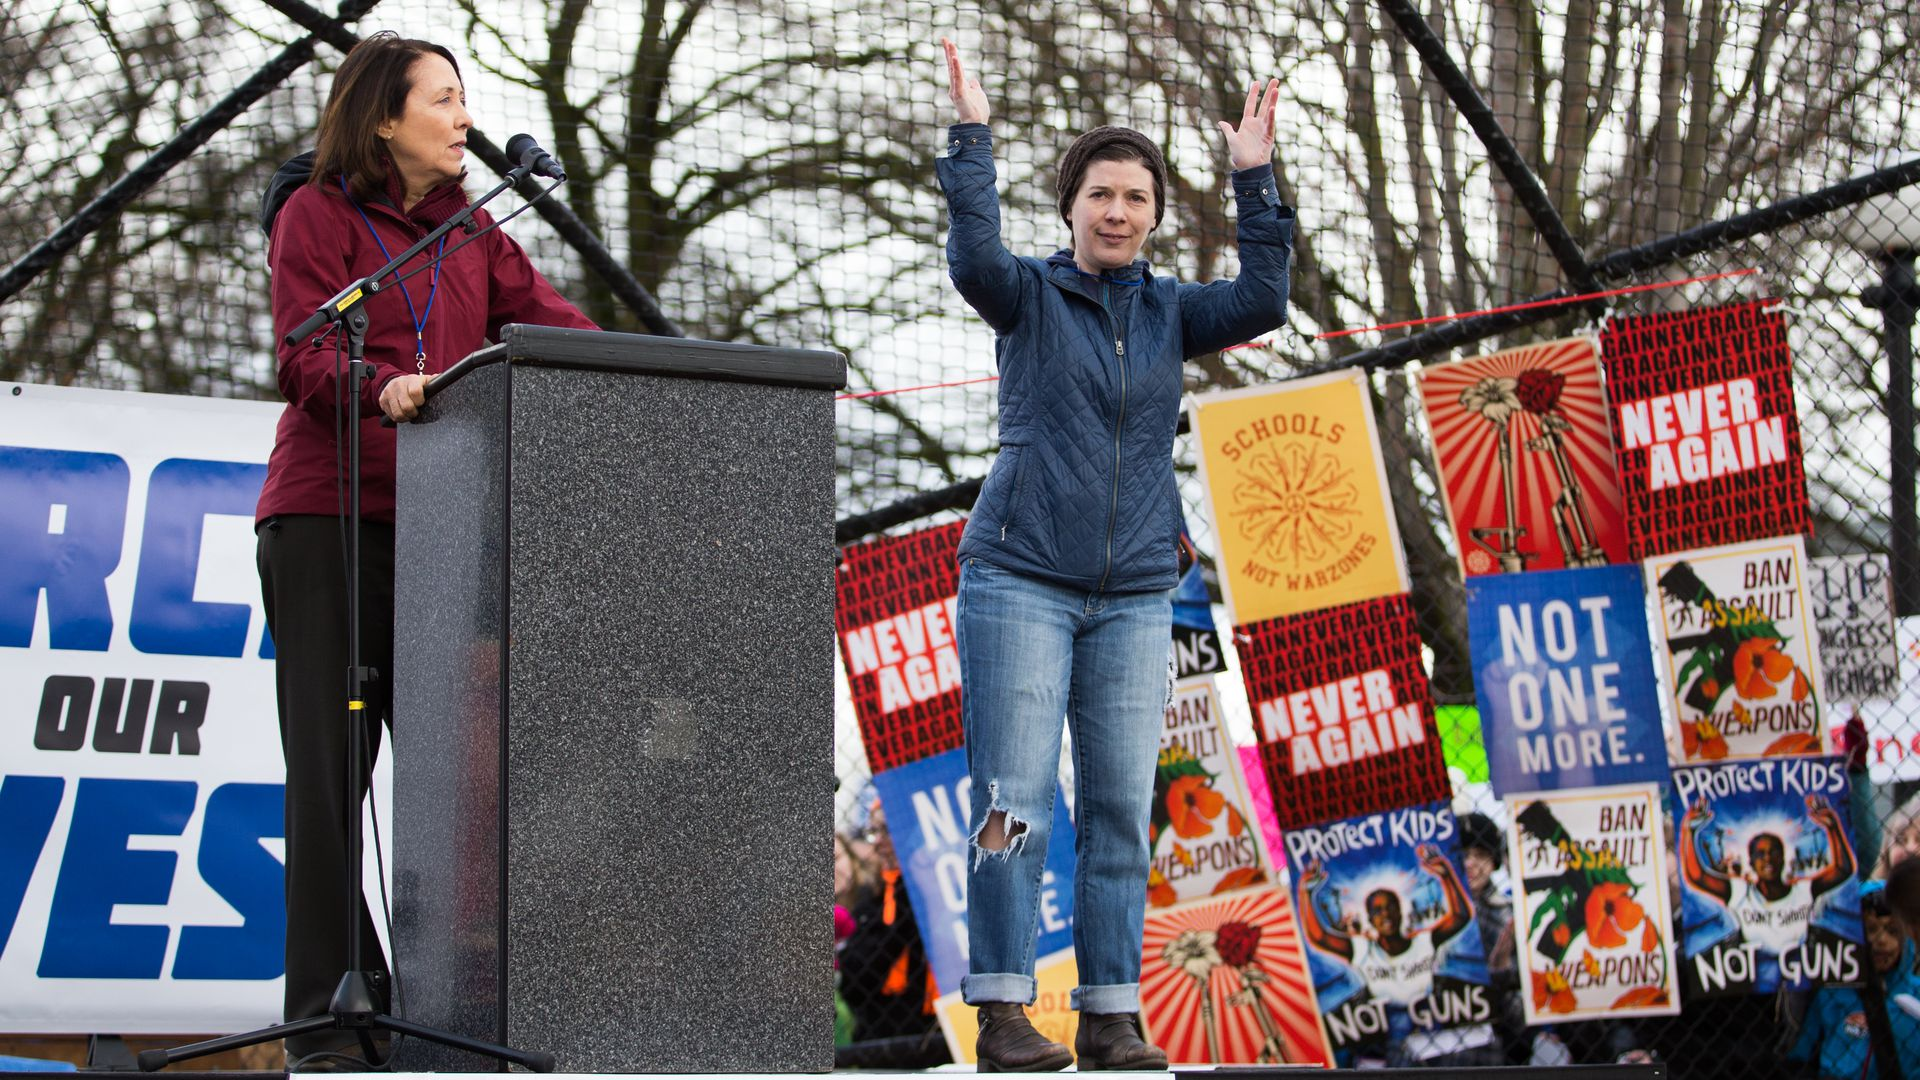 Democratic Senator Maria Cantwell, left, speaks at Cal Anderson Park during the March for Our Lives rally on March 24, 2018 in Seattle, Washington.